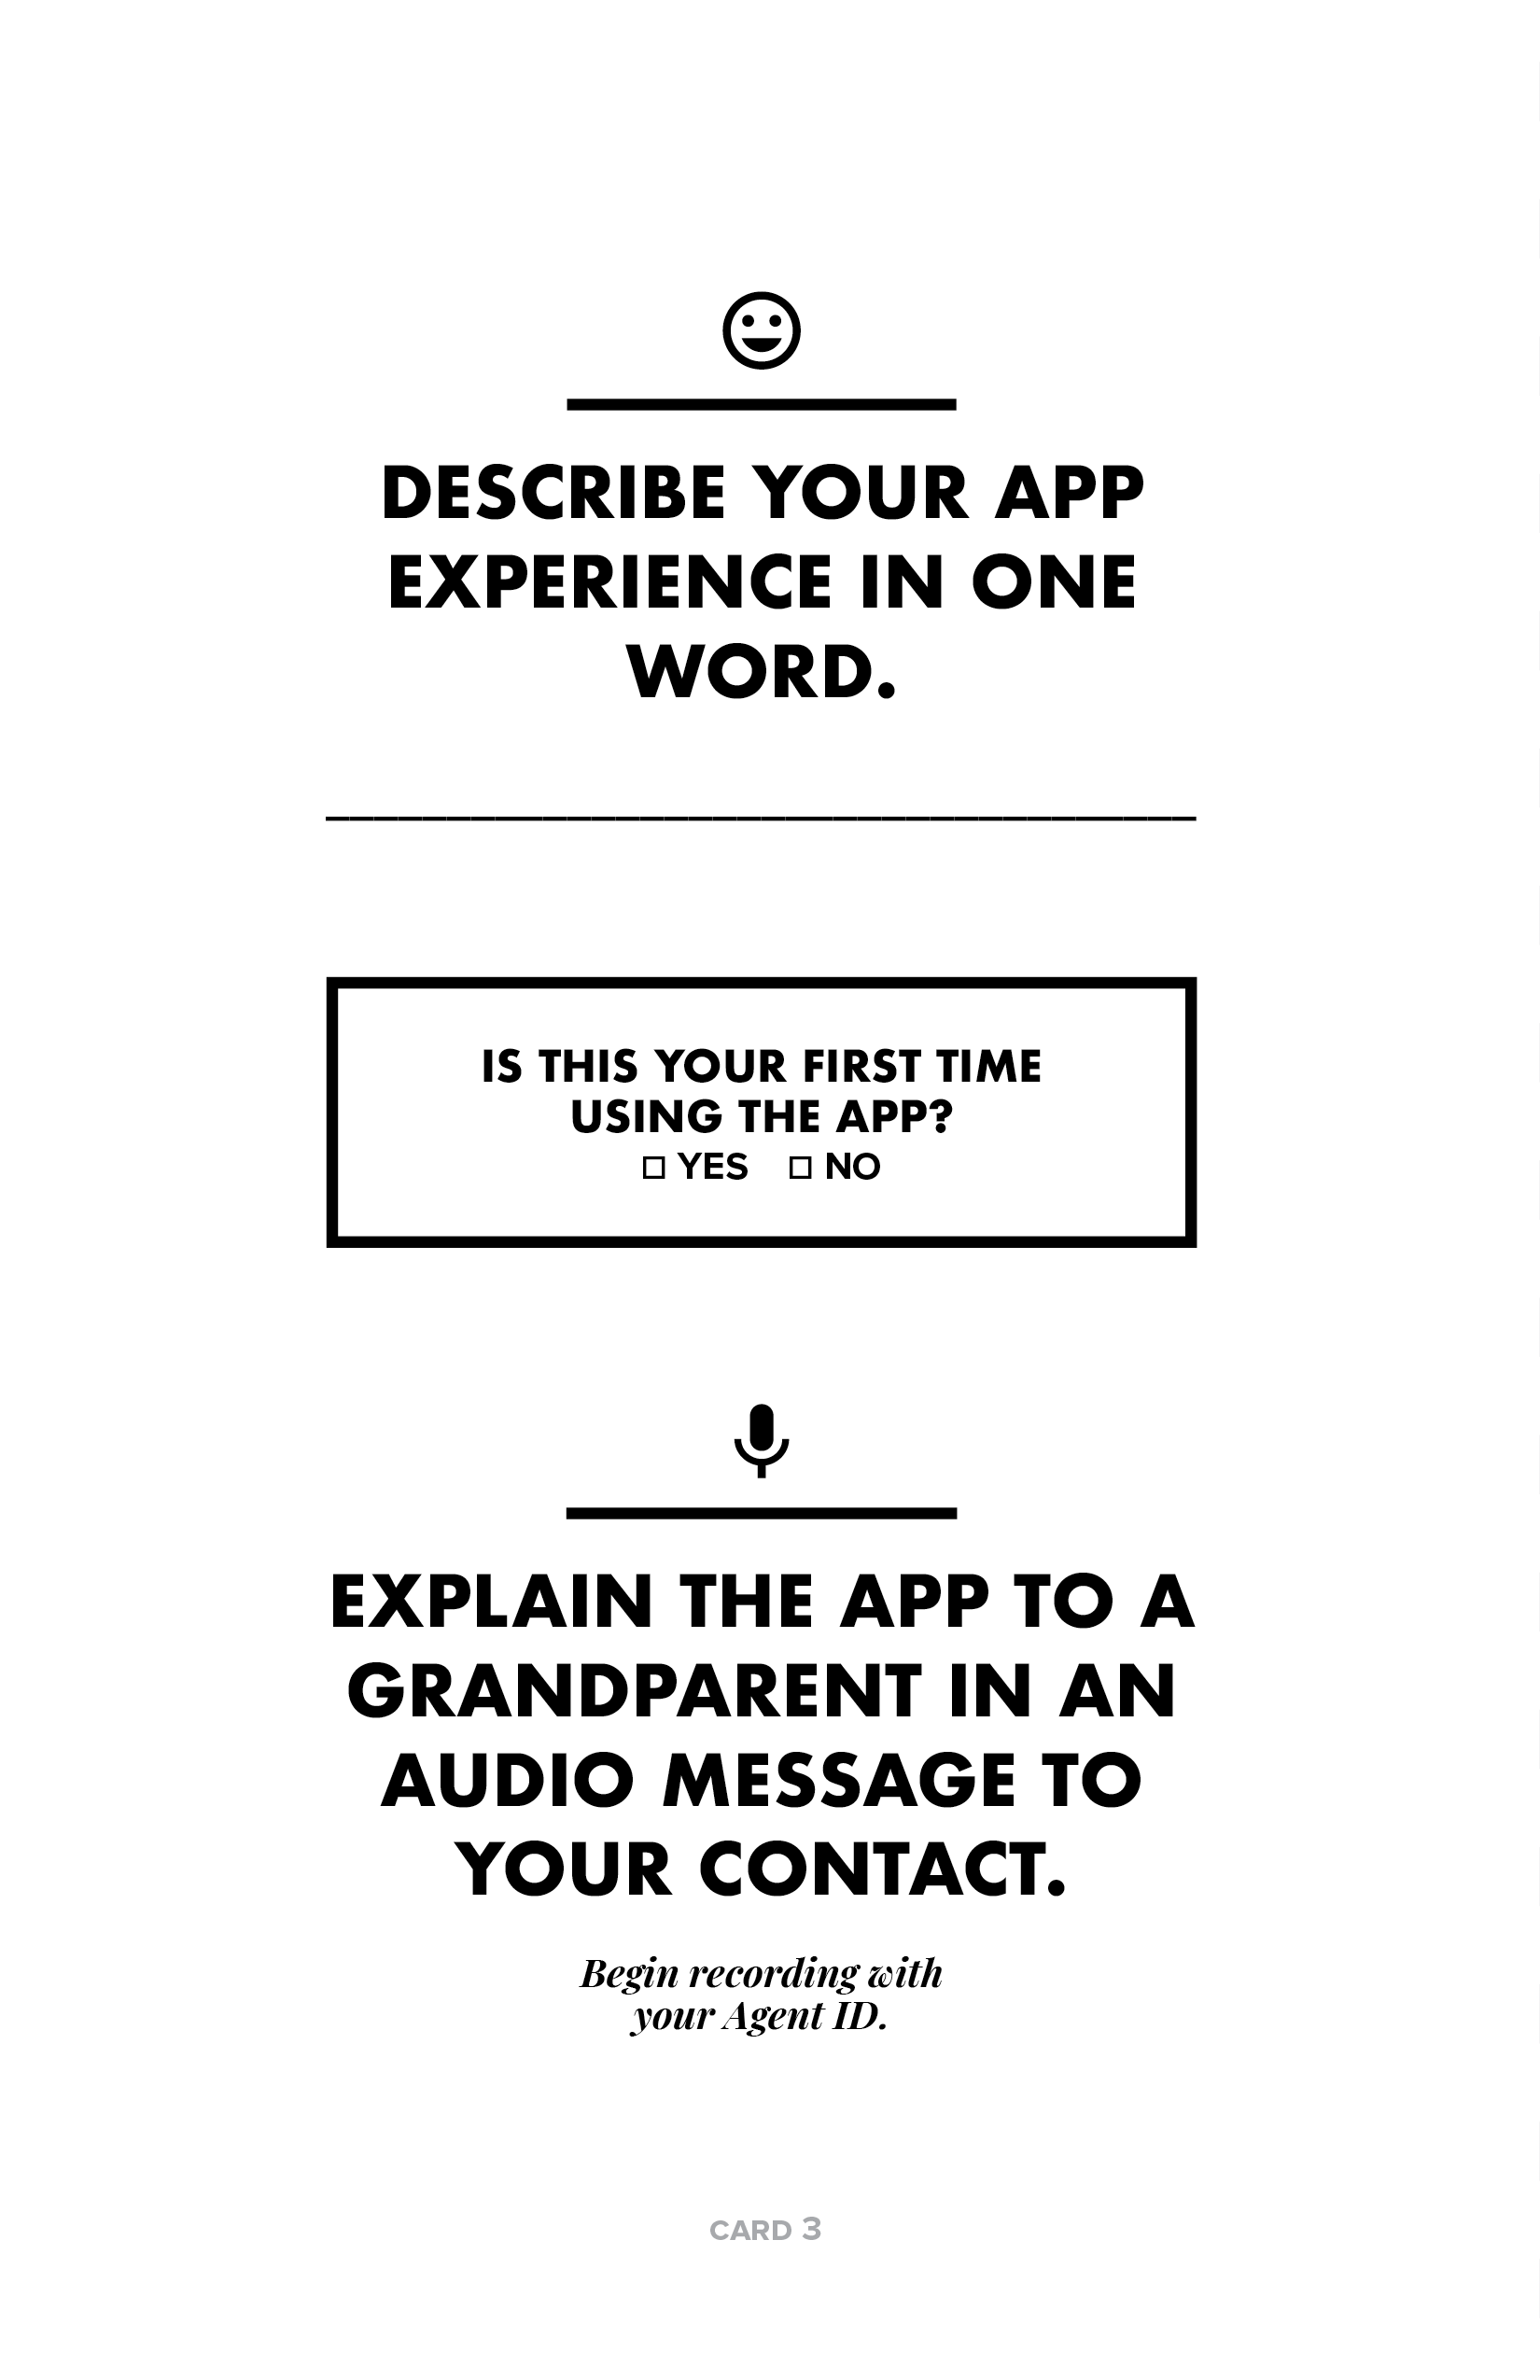 First-use-single4.png